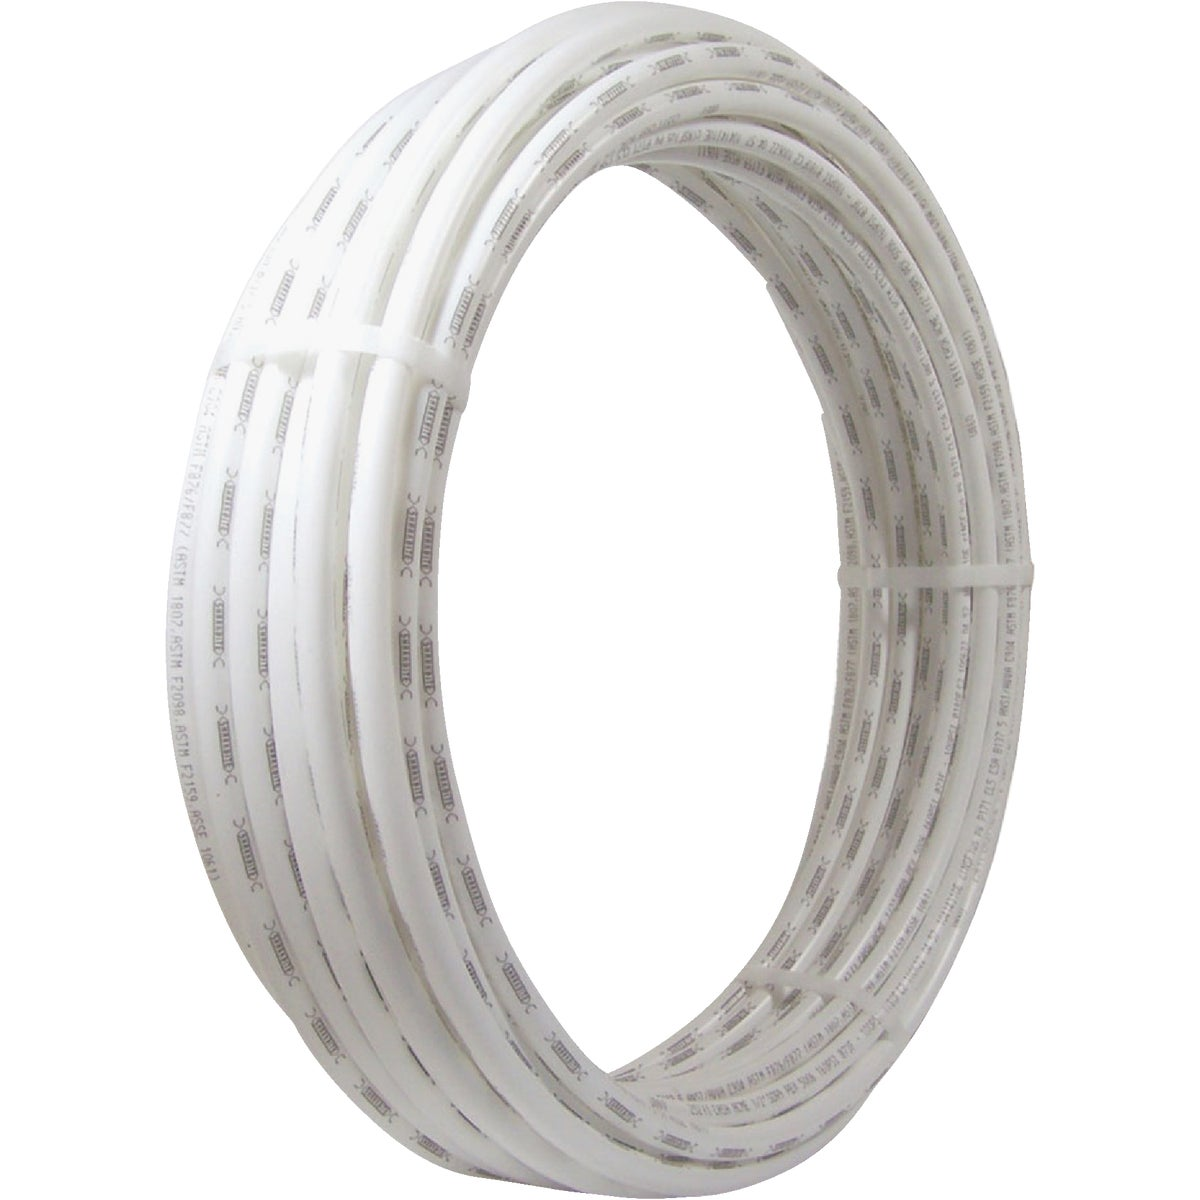 "1/2""X100' WHT PEX TUBING - WPTC08-100W by Watts Regulator Co"